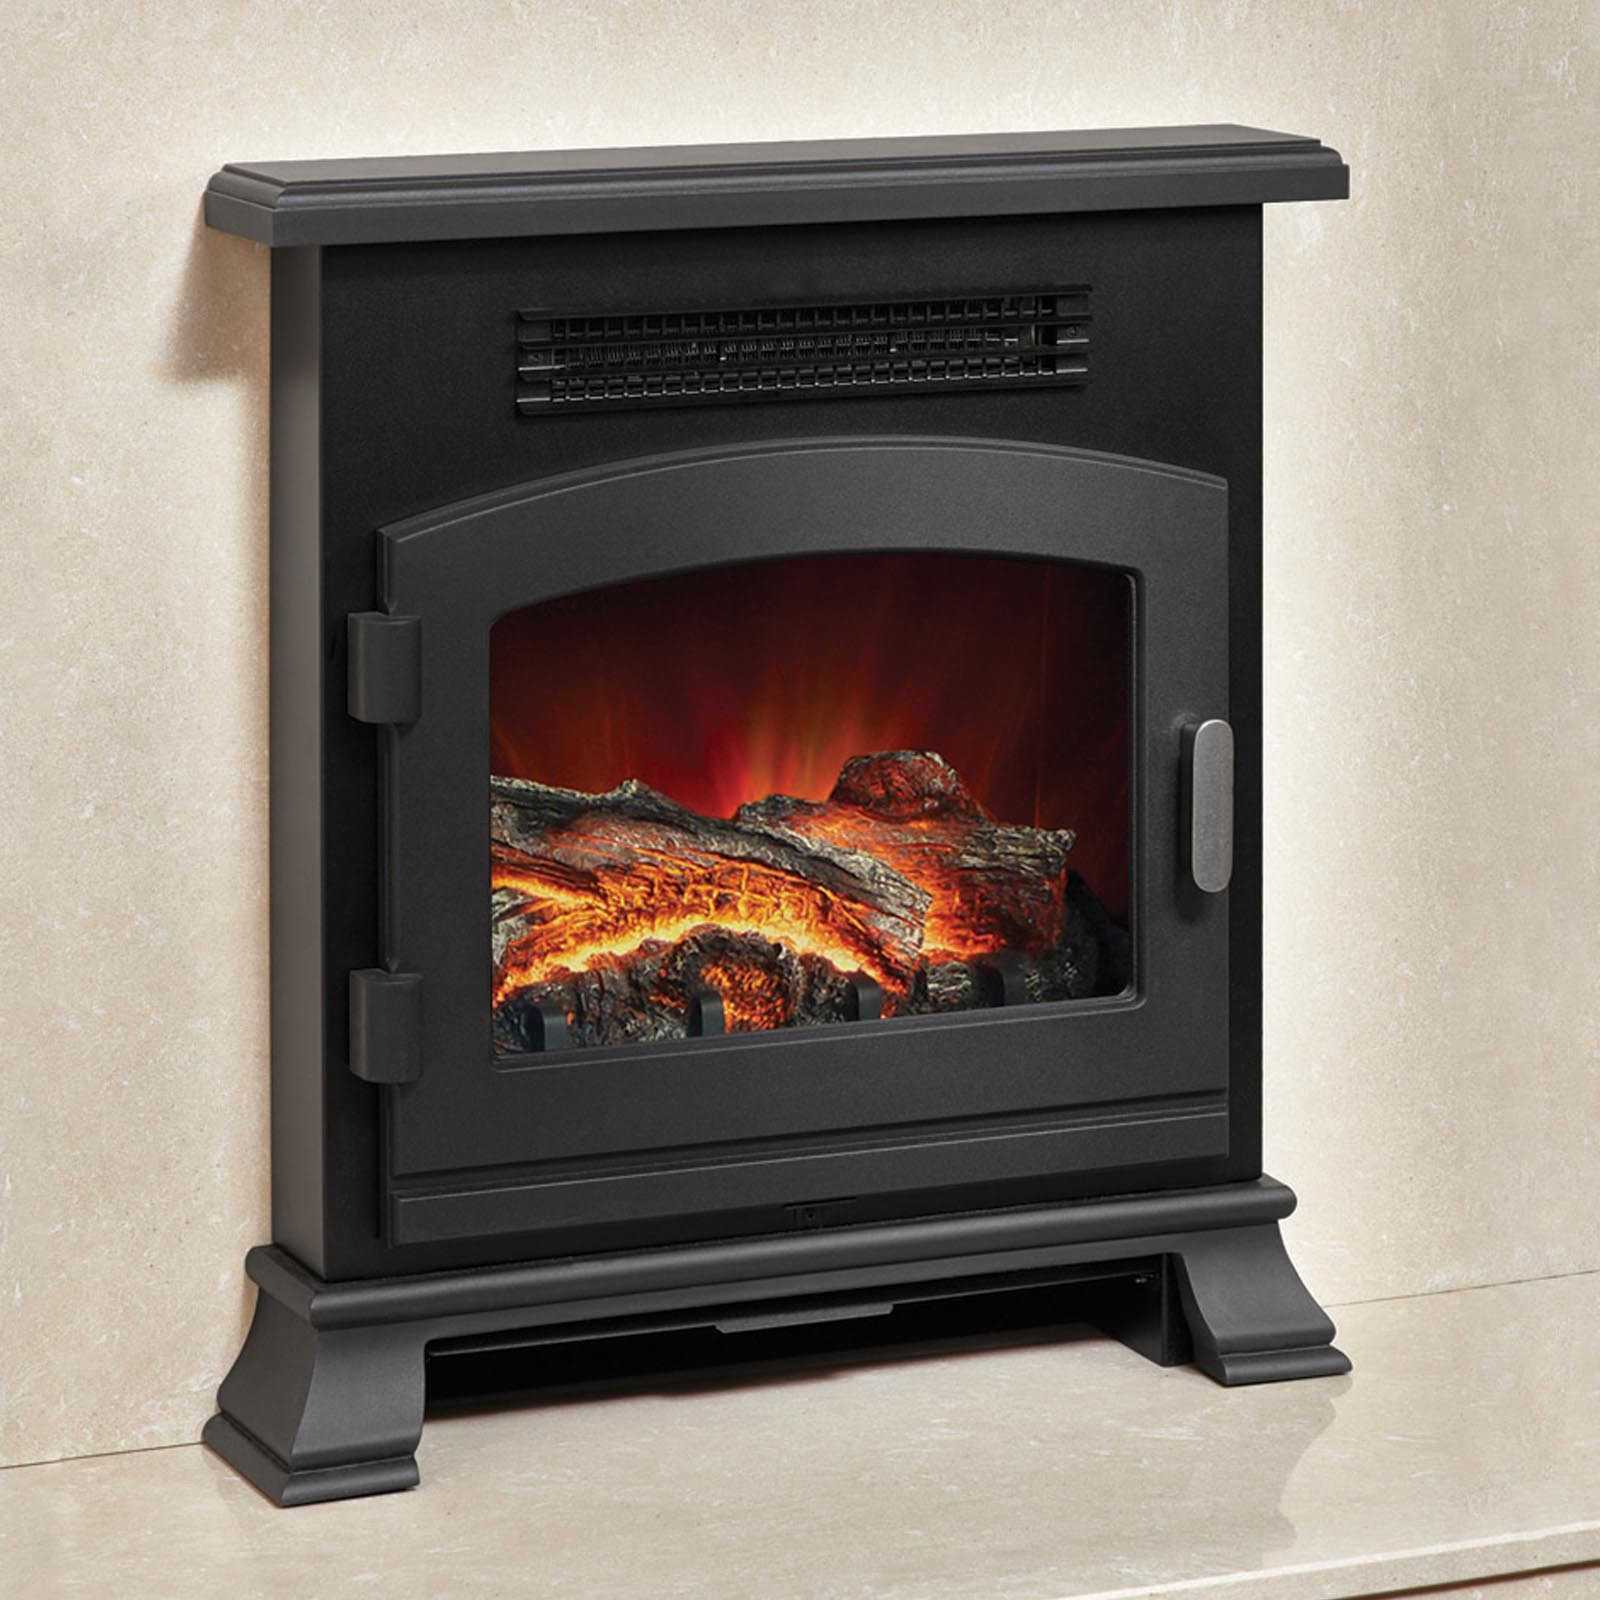 Bargain prices be modern banbury stove electric fire for Modern gas fireplace price